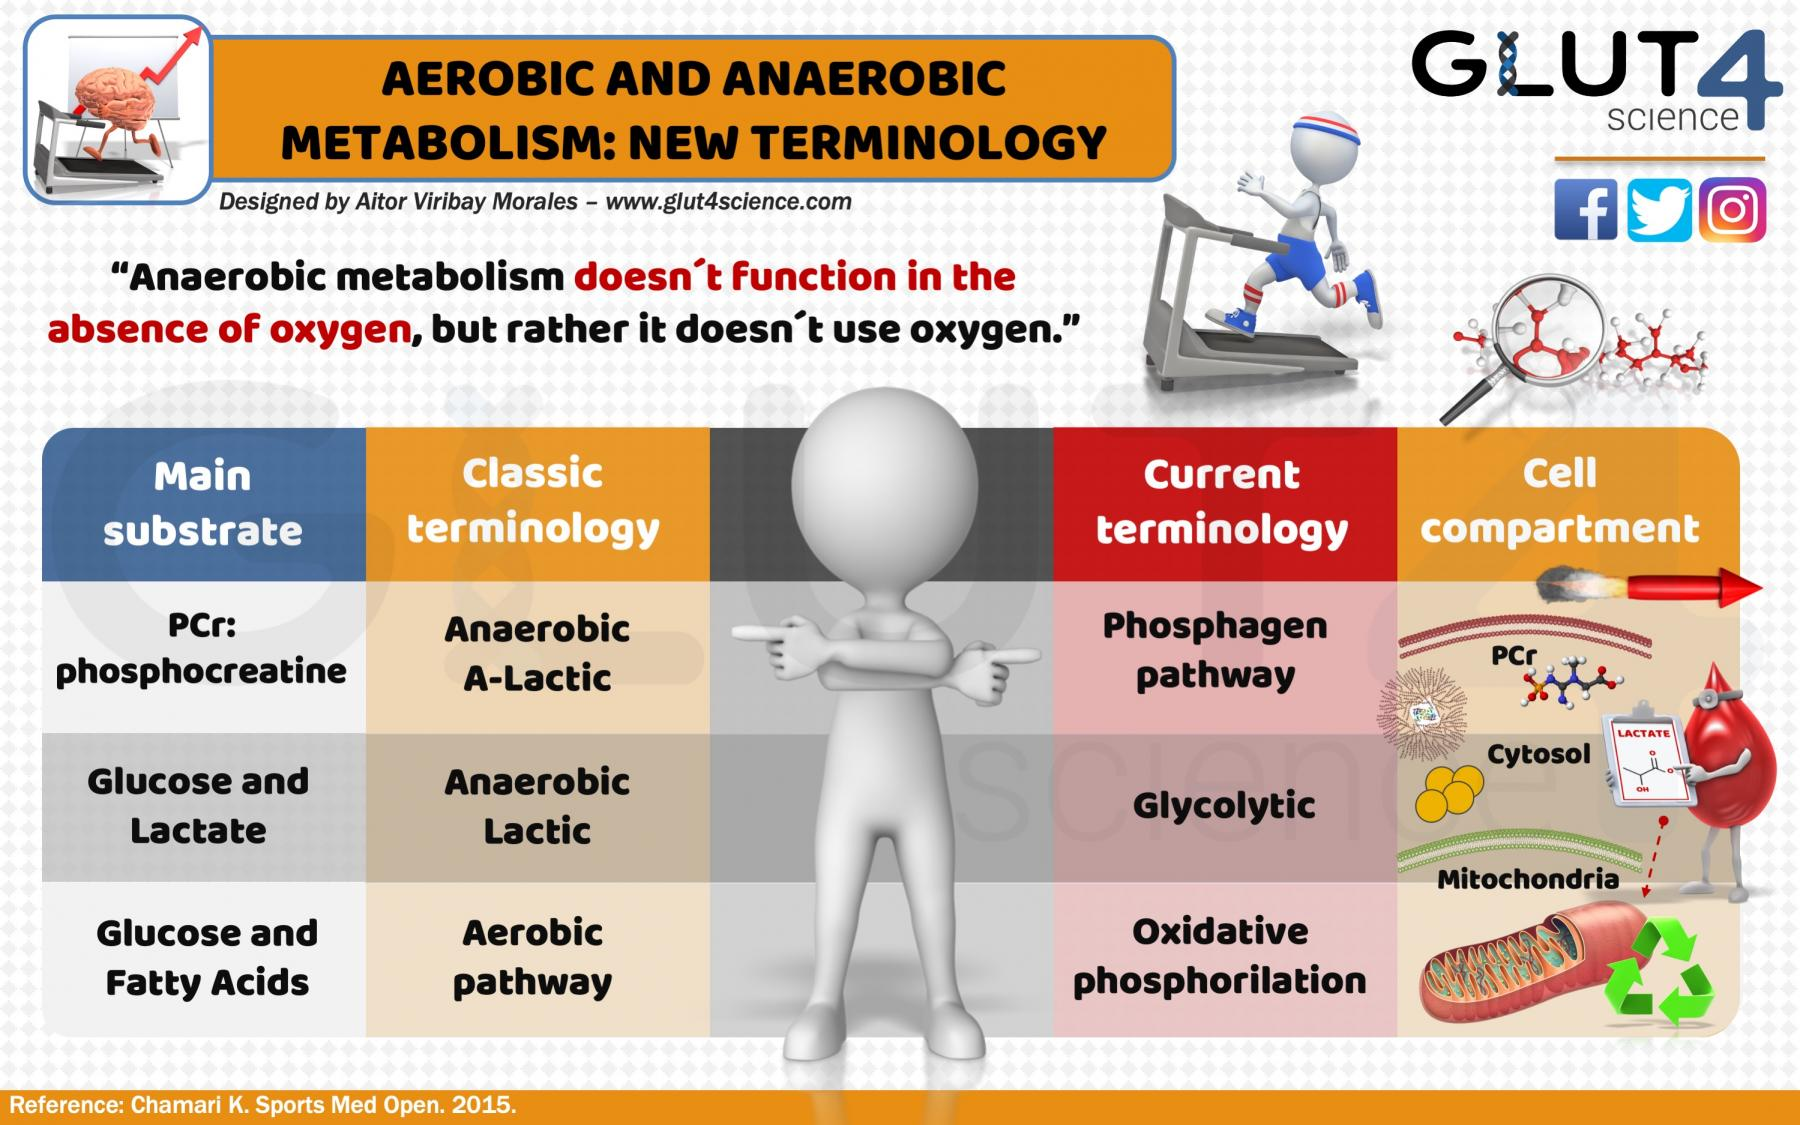 Aerobic and anaerobic: new terminology